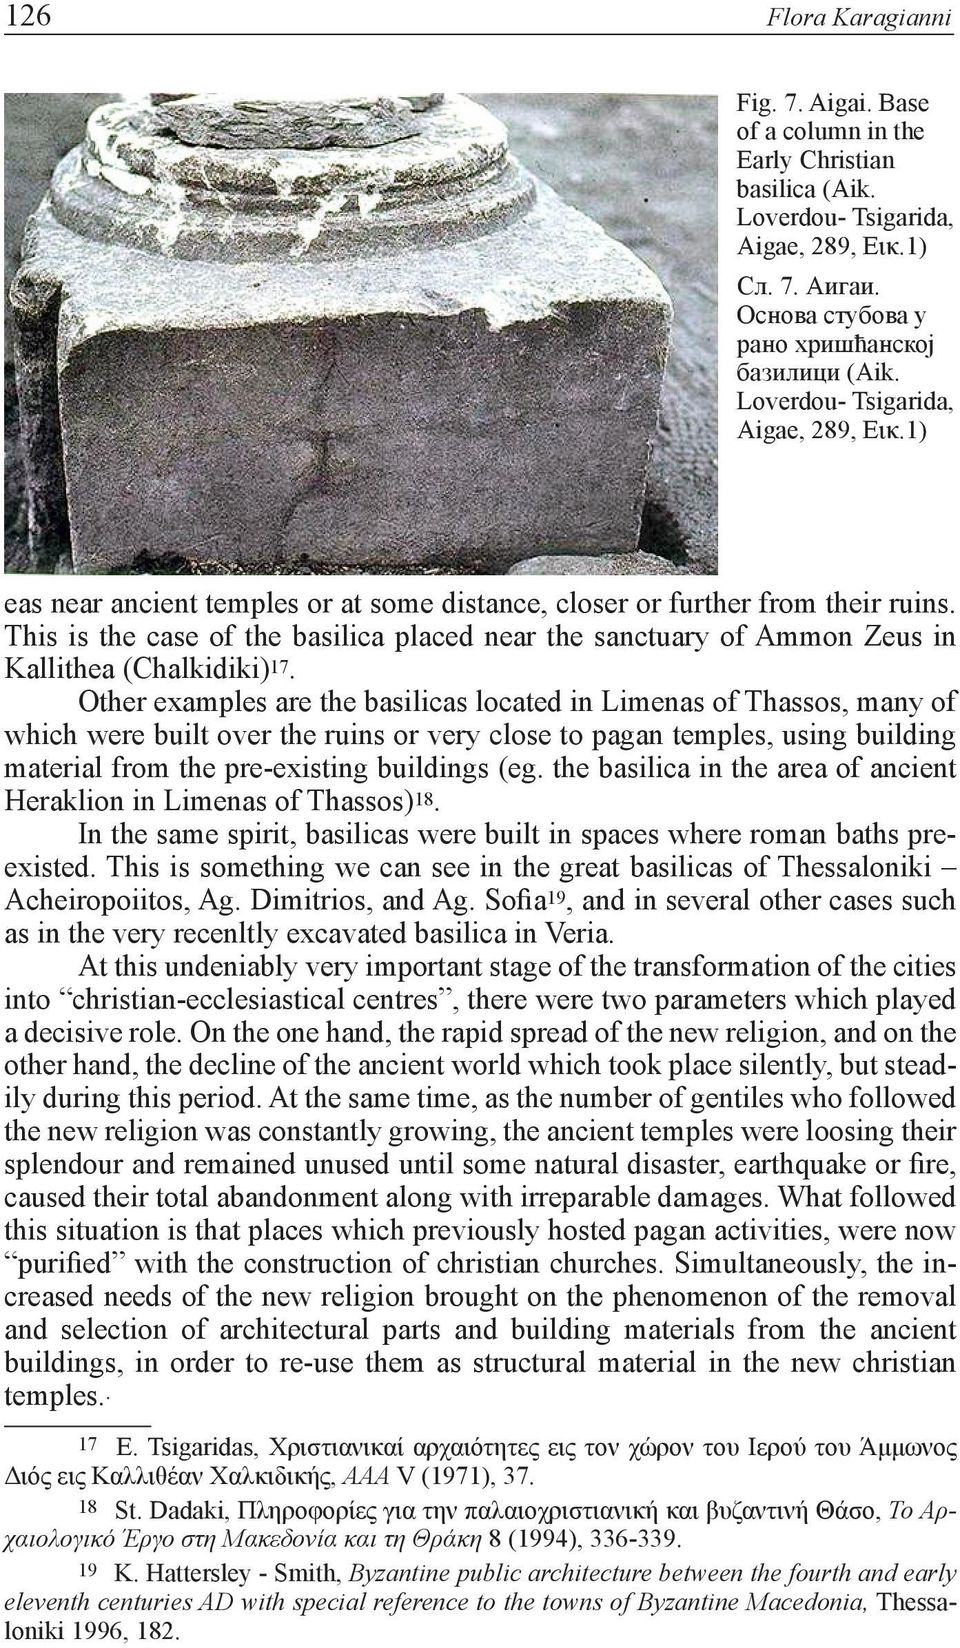 This is the case of the basilica placed near the sanctuary of Ammon Zeus in Kallithea (Chalkidiki) 17.